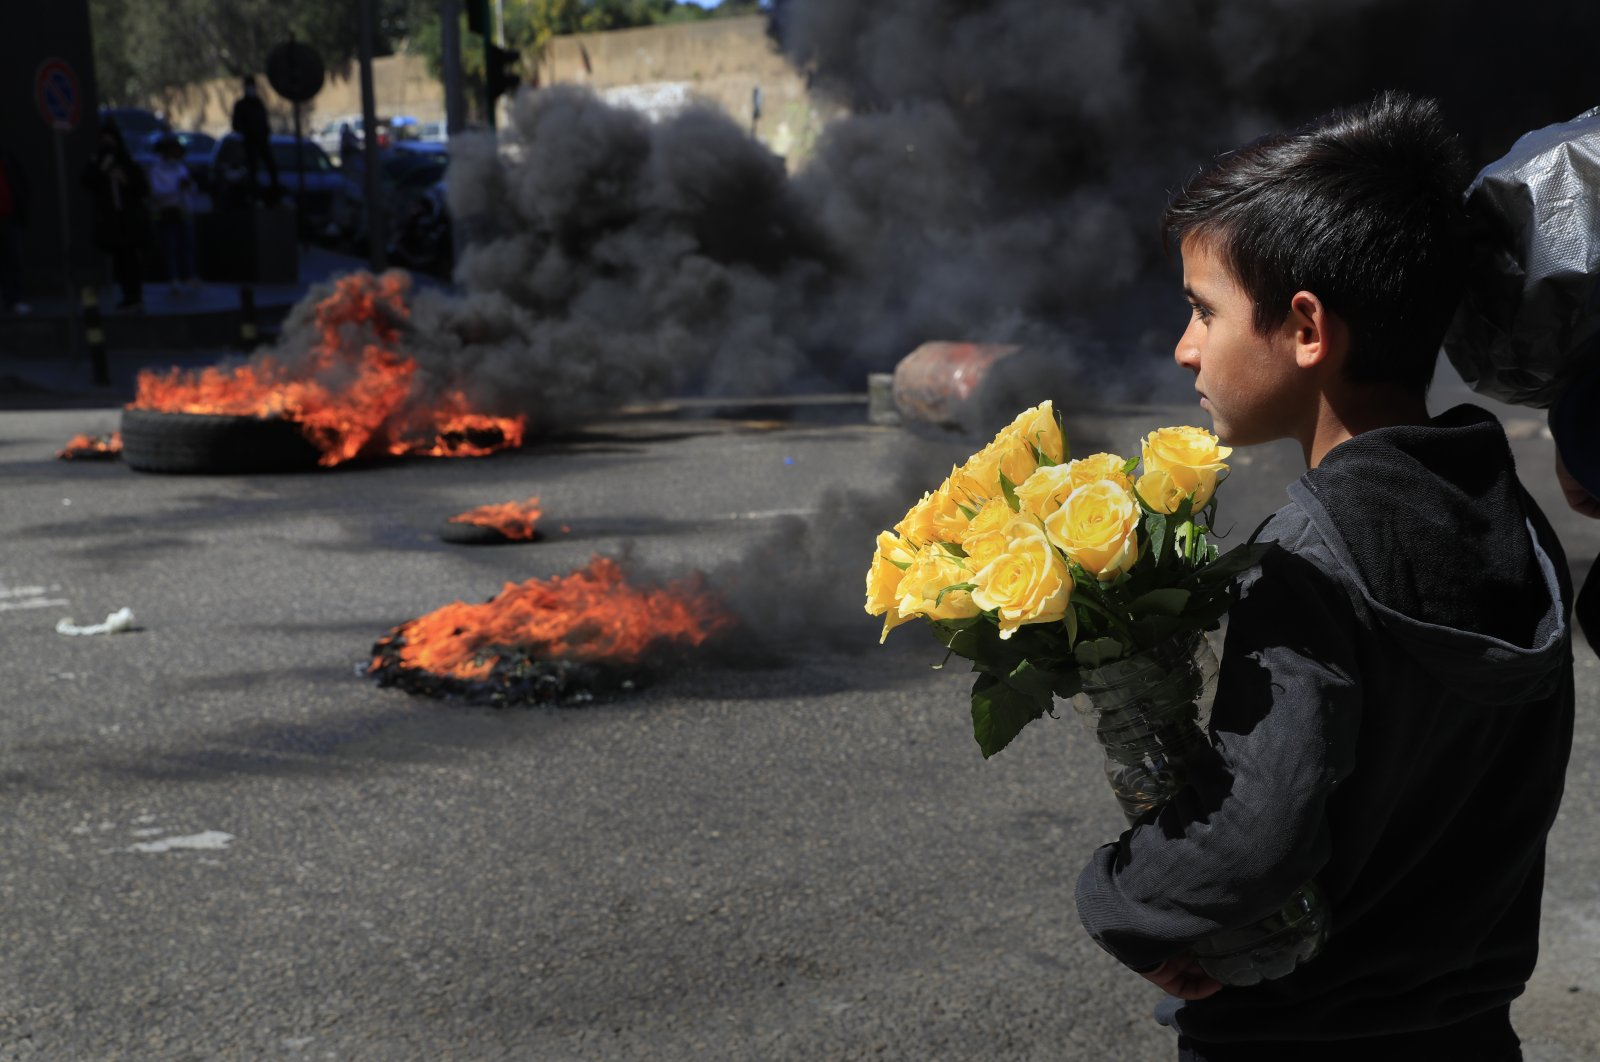 A Syrian boy who sells flowers on the street watches protesters burn tires to block a main road during a protest against the crash of the local currency, in Beirut, Lebanon, March 16, 2021. (AP Photo)